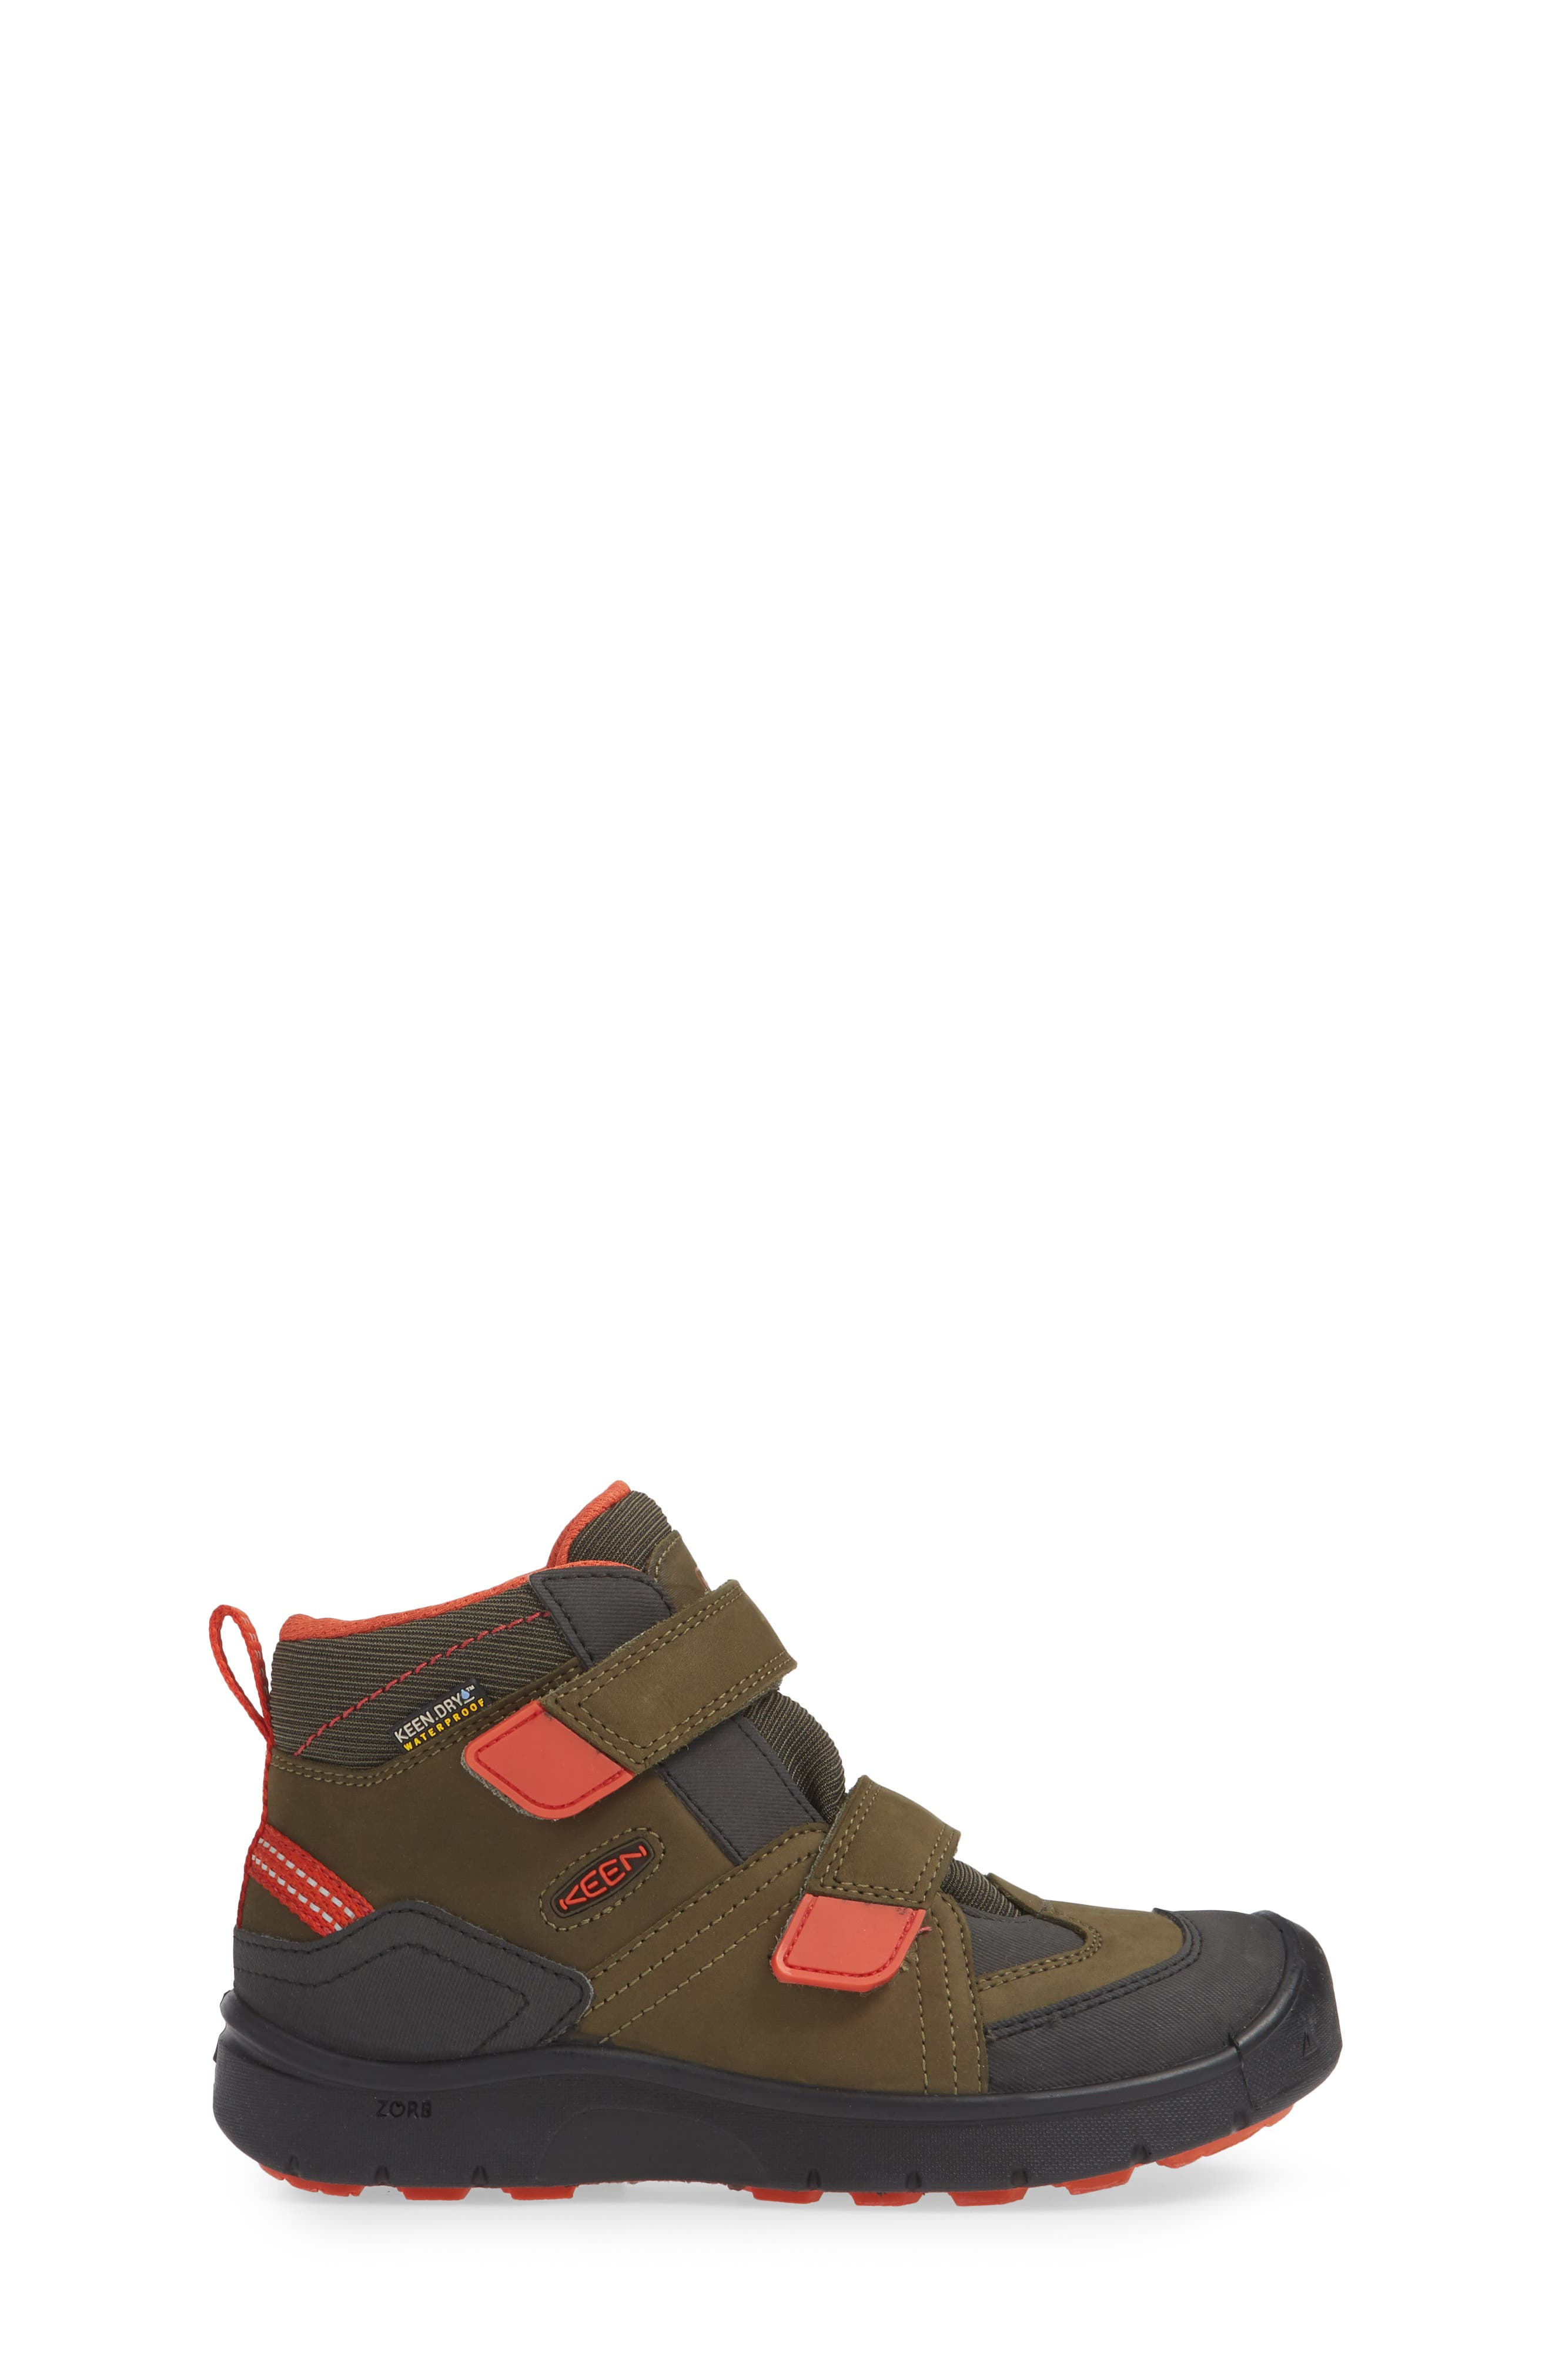 KEEN, Hikeport Strap Waterproof Mid Boot, Alternate thumbnail 3, color, MARTINI OLIVE/ PUMPKIN